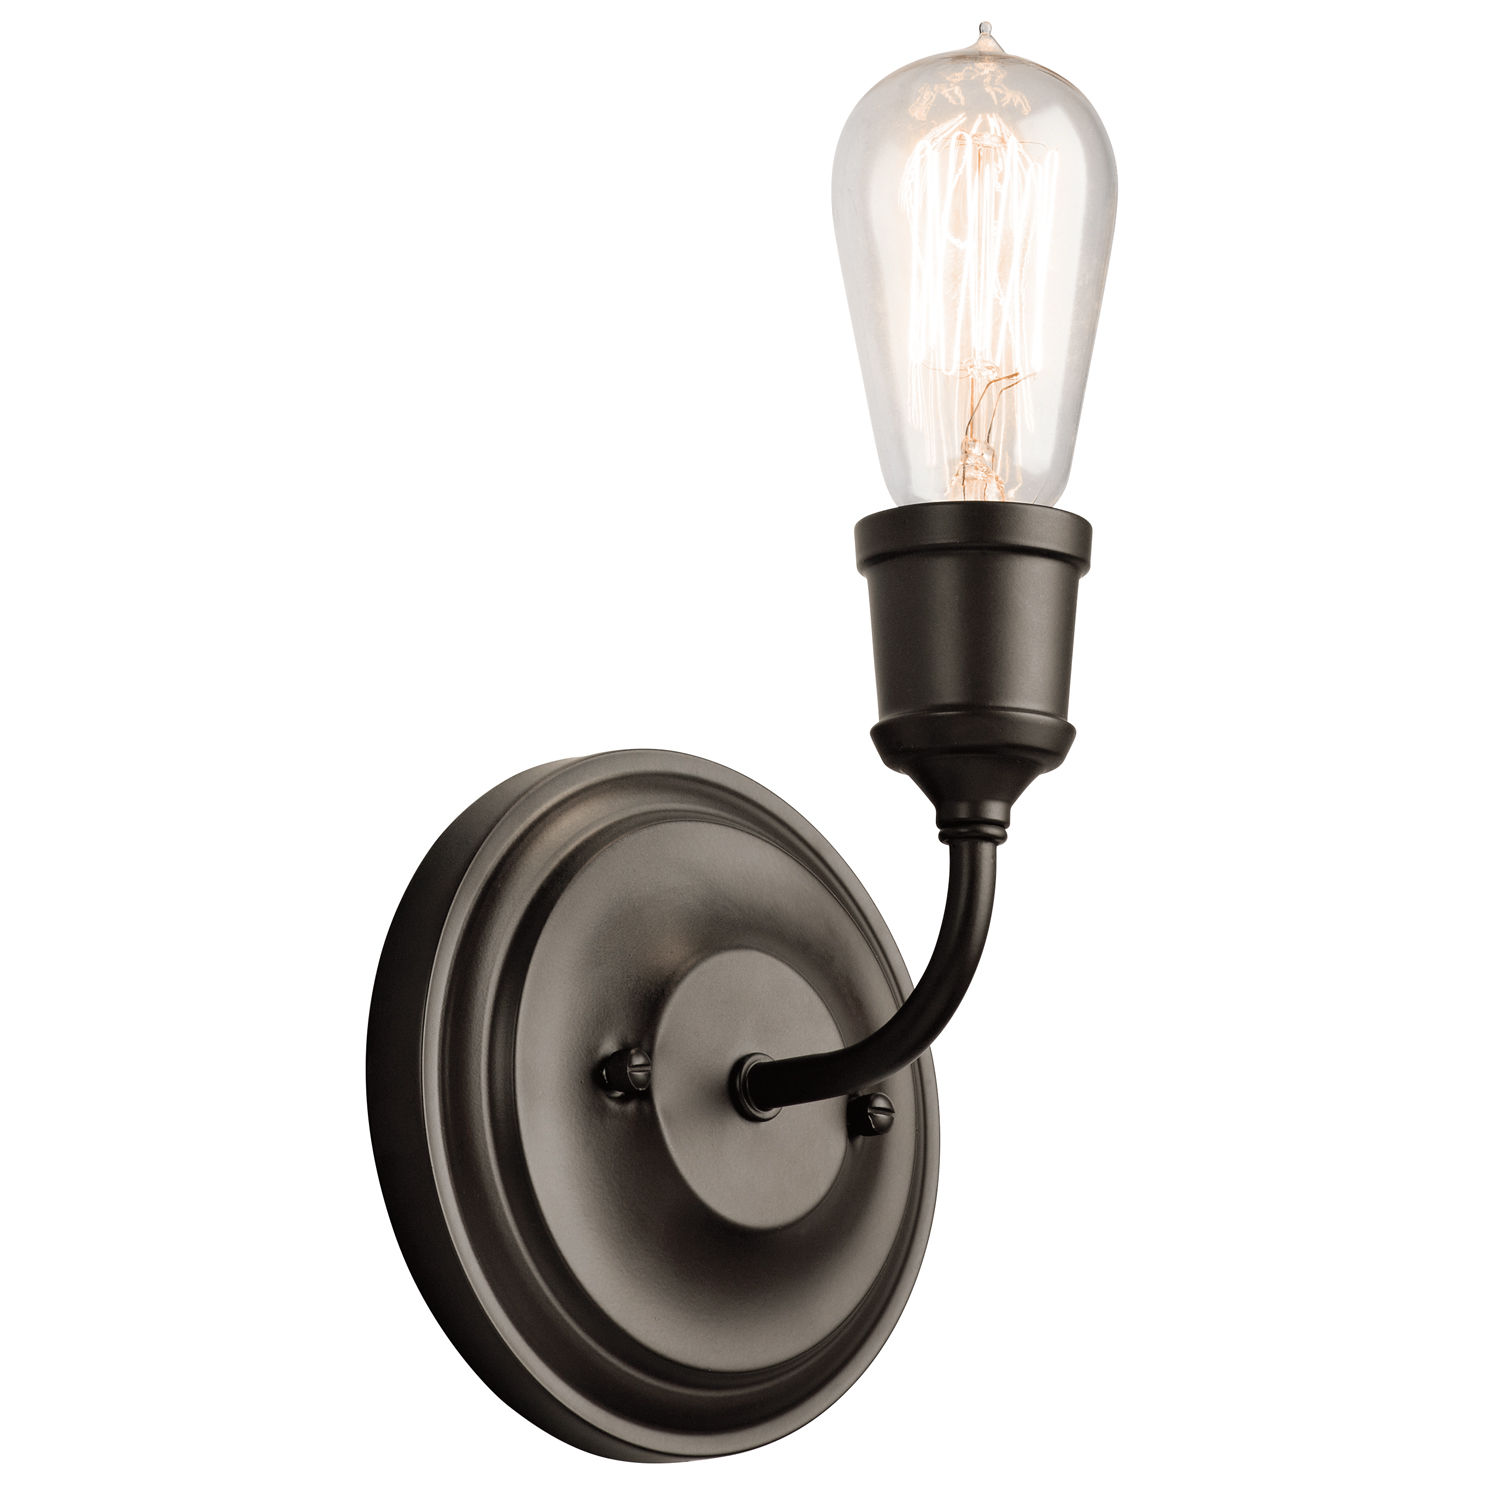 How to Choose A Wall Sconce